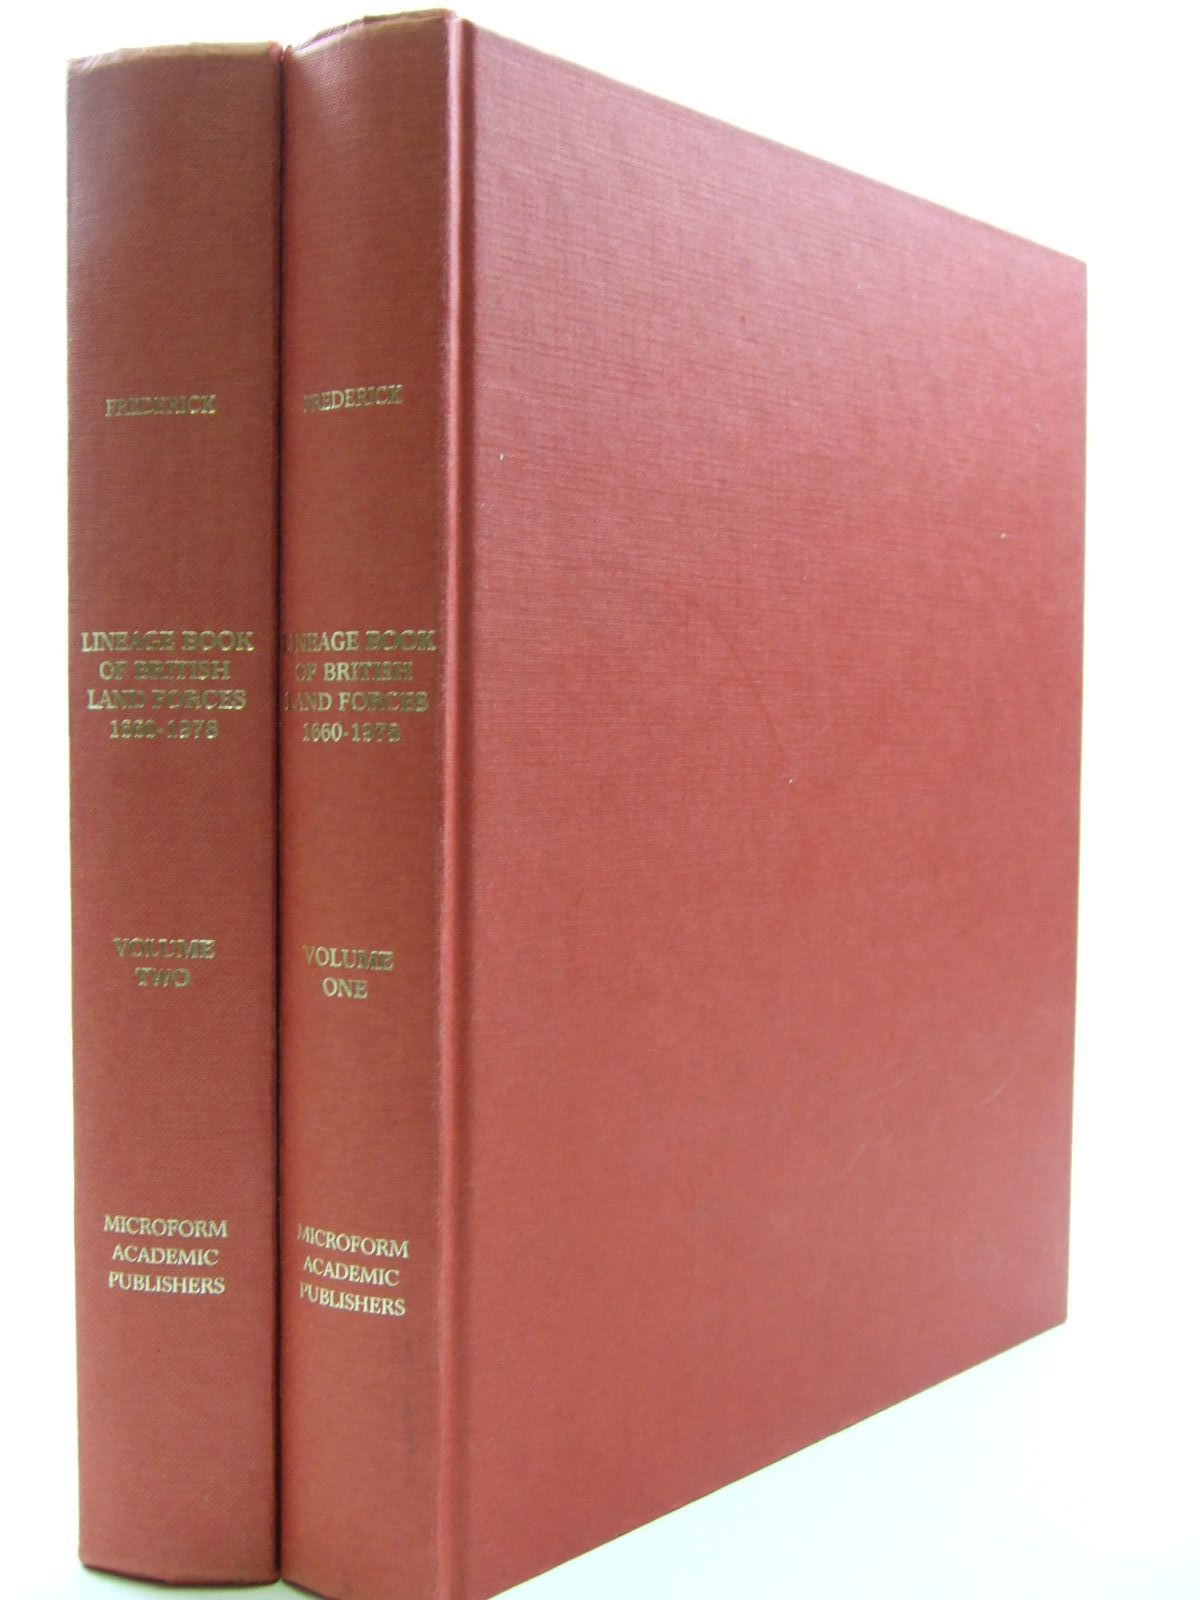 Photo of LINEAGE BOOK OF BRITISH LAND FORCES 1660-1978 (2 VOLUMES) written by Frederick, J.B.M. published by Microform Academic Publishers (STOCK CODE: 2109323)  for sale by Stella & Rose's Books